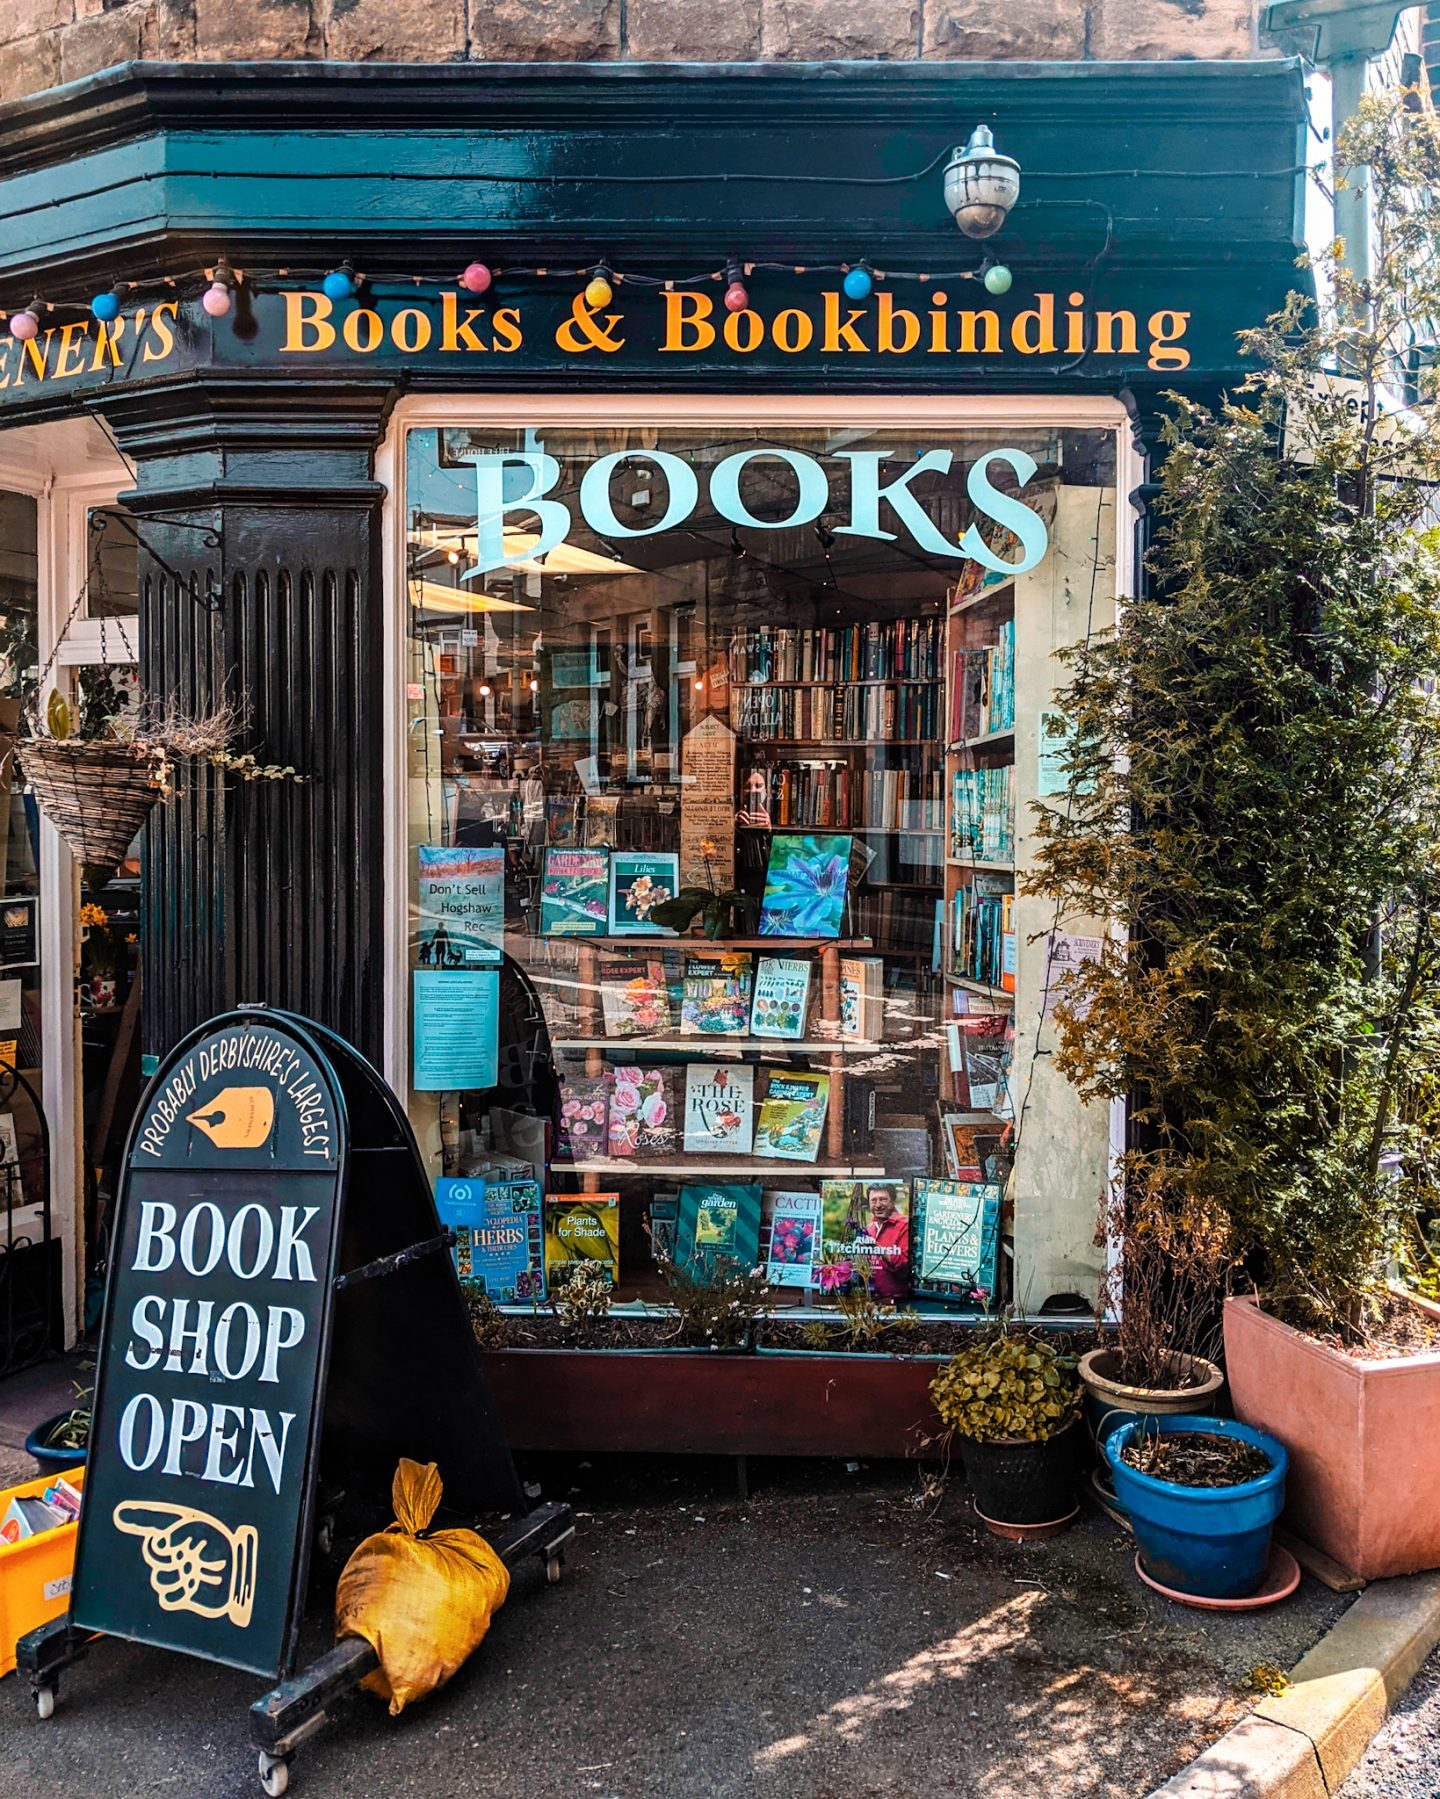 A full-size window at Scriveners Bookshop Buxton with a sign reading Book Shop Open